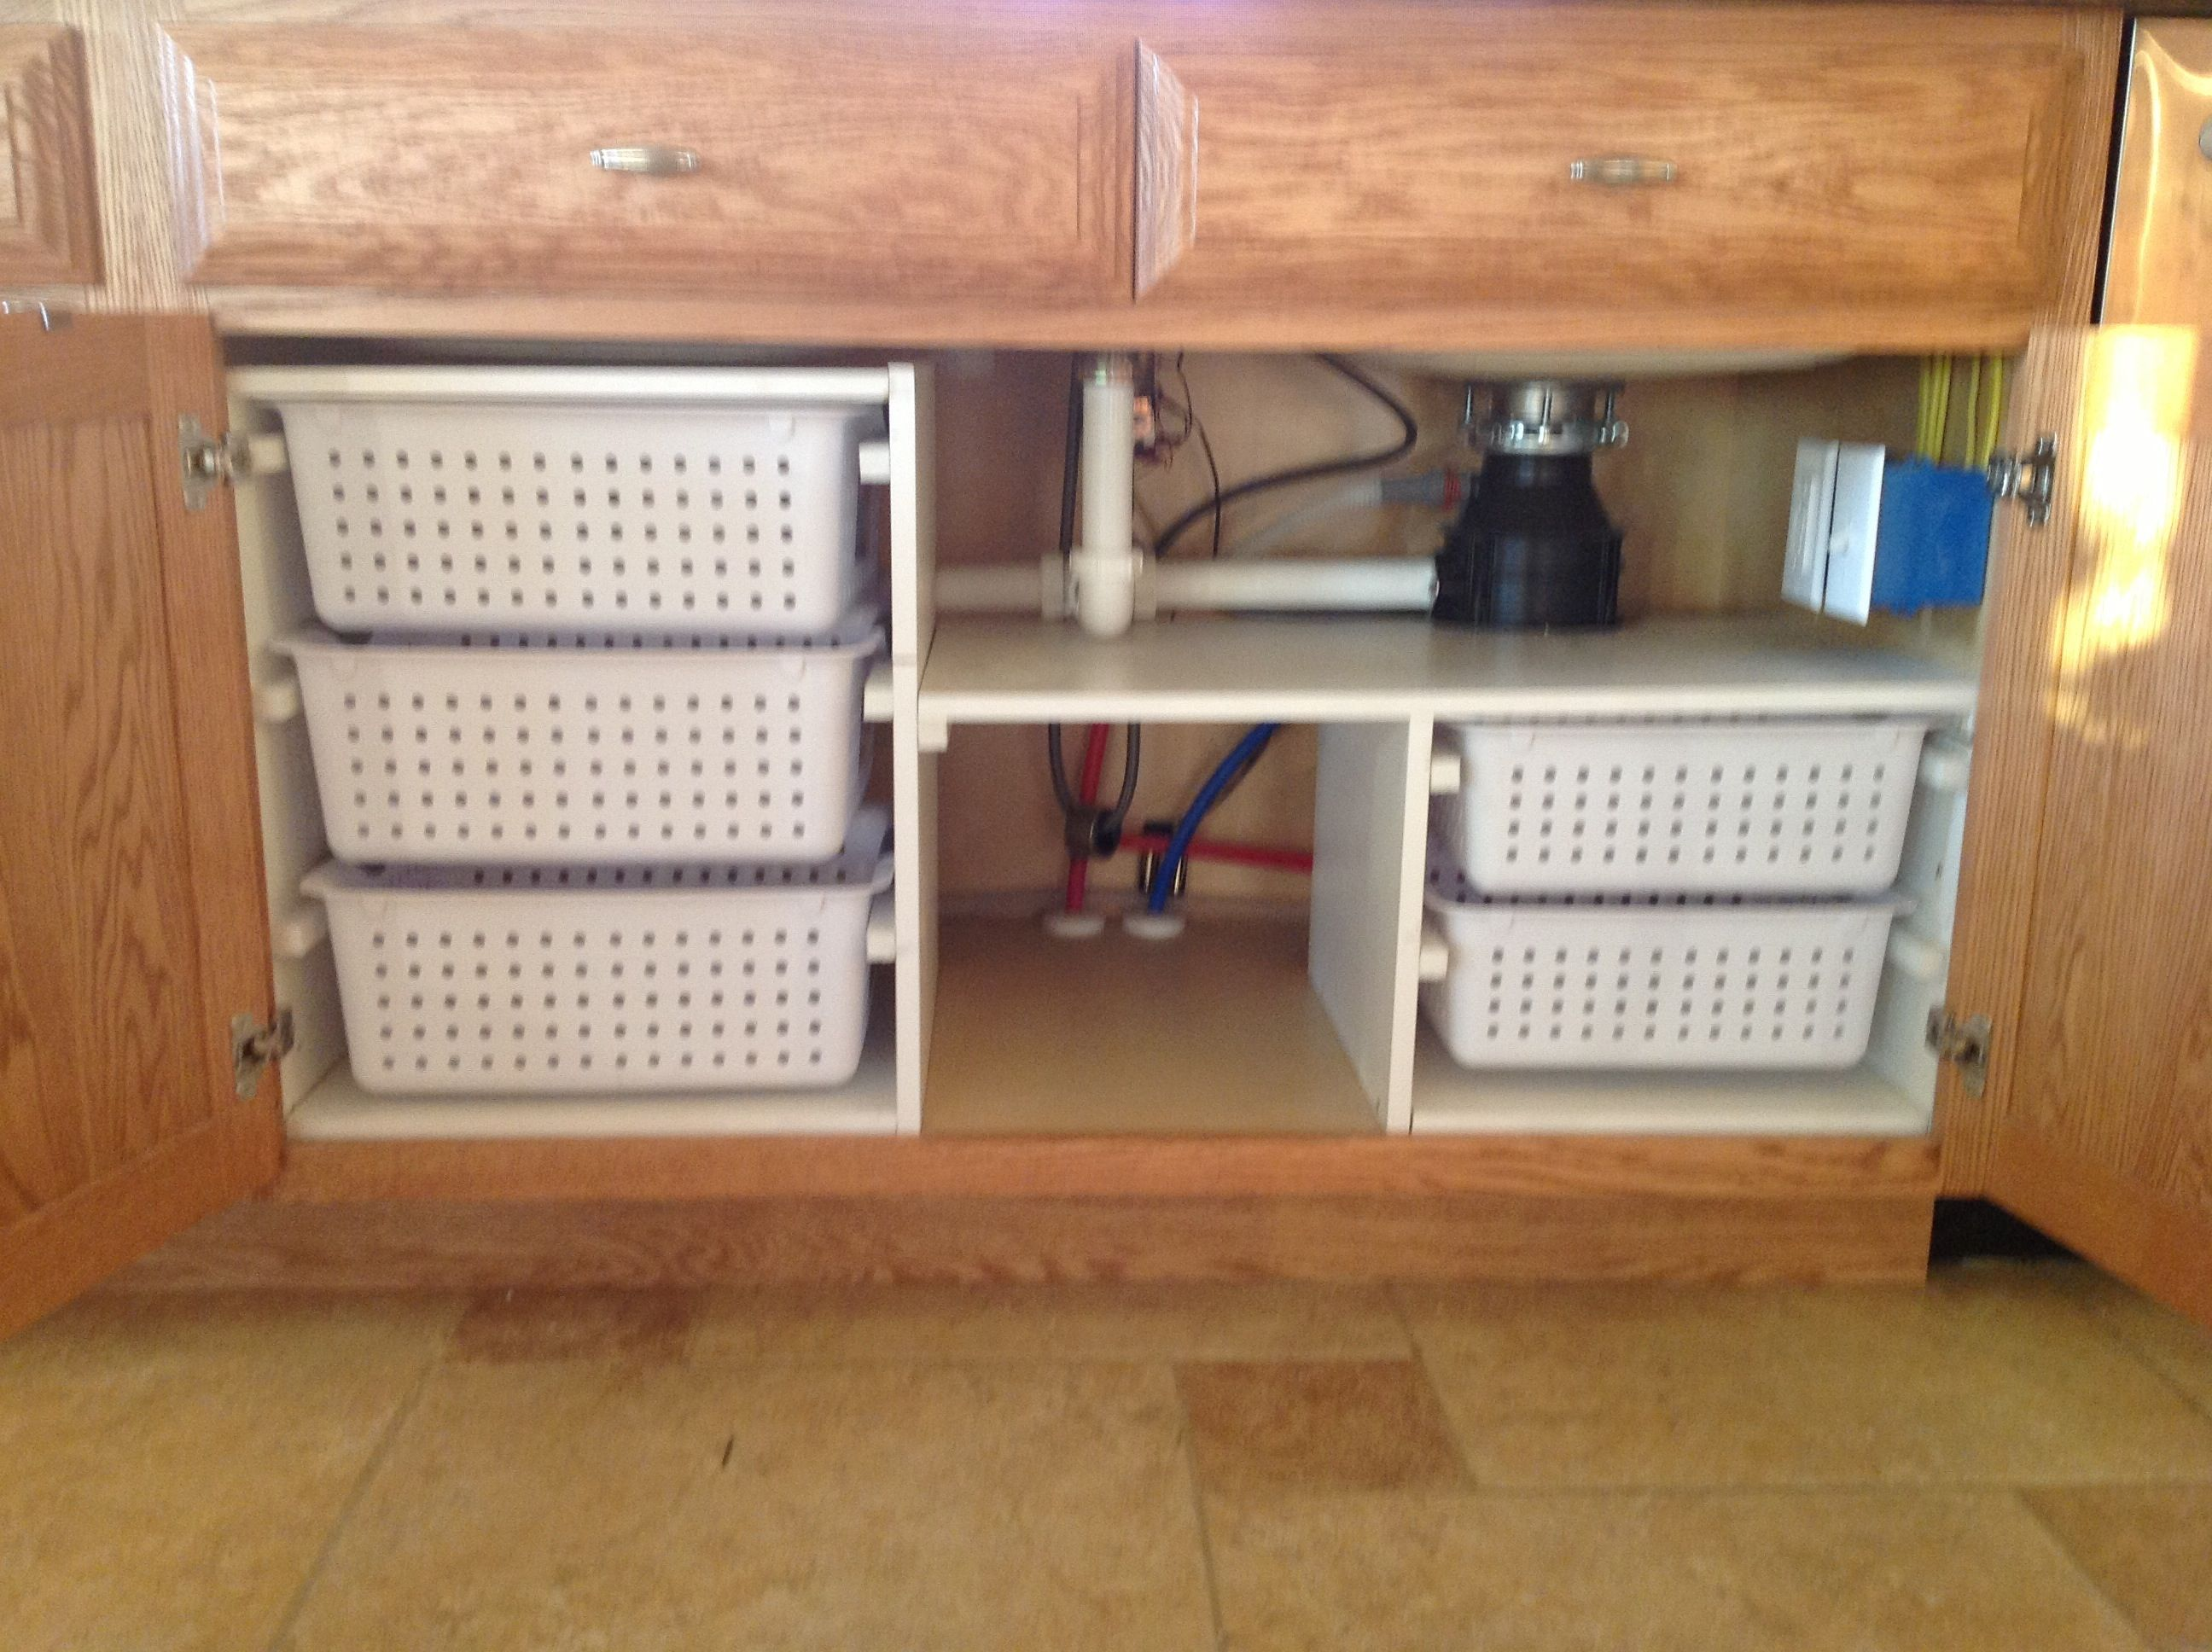 Kitchen Shelf Organization Under Kitchen Sink Organization My Husband Built For The Home